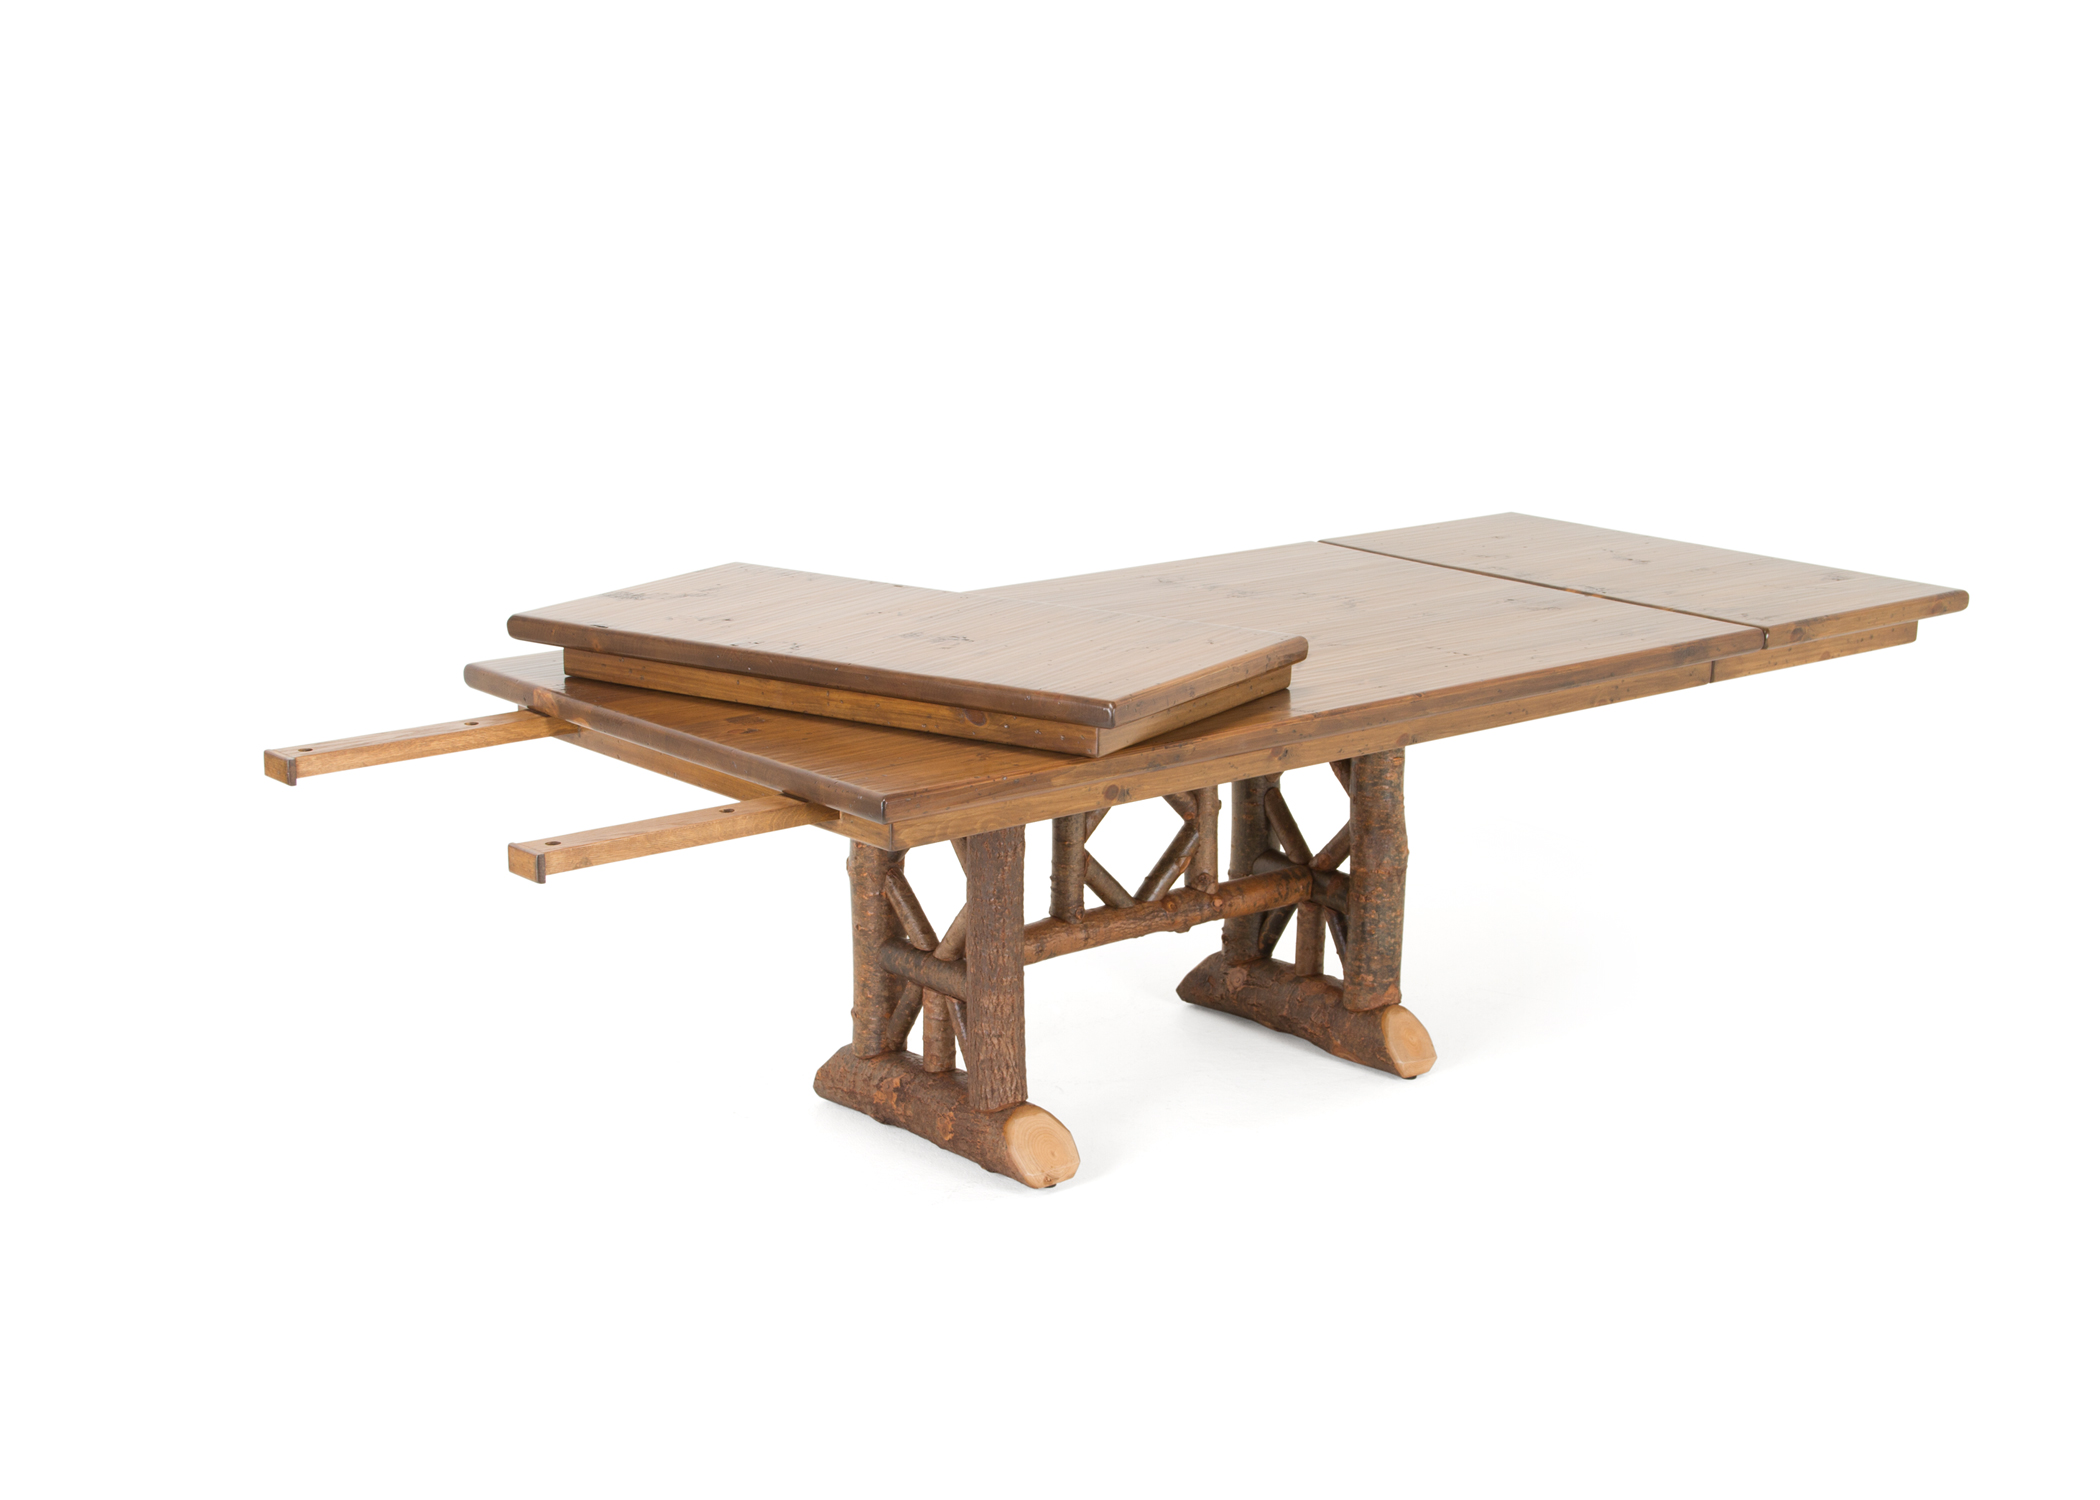 3119-Custom-Table-2-La-Lune-Collection-Rustic-Furniture